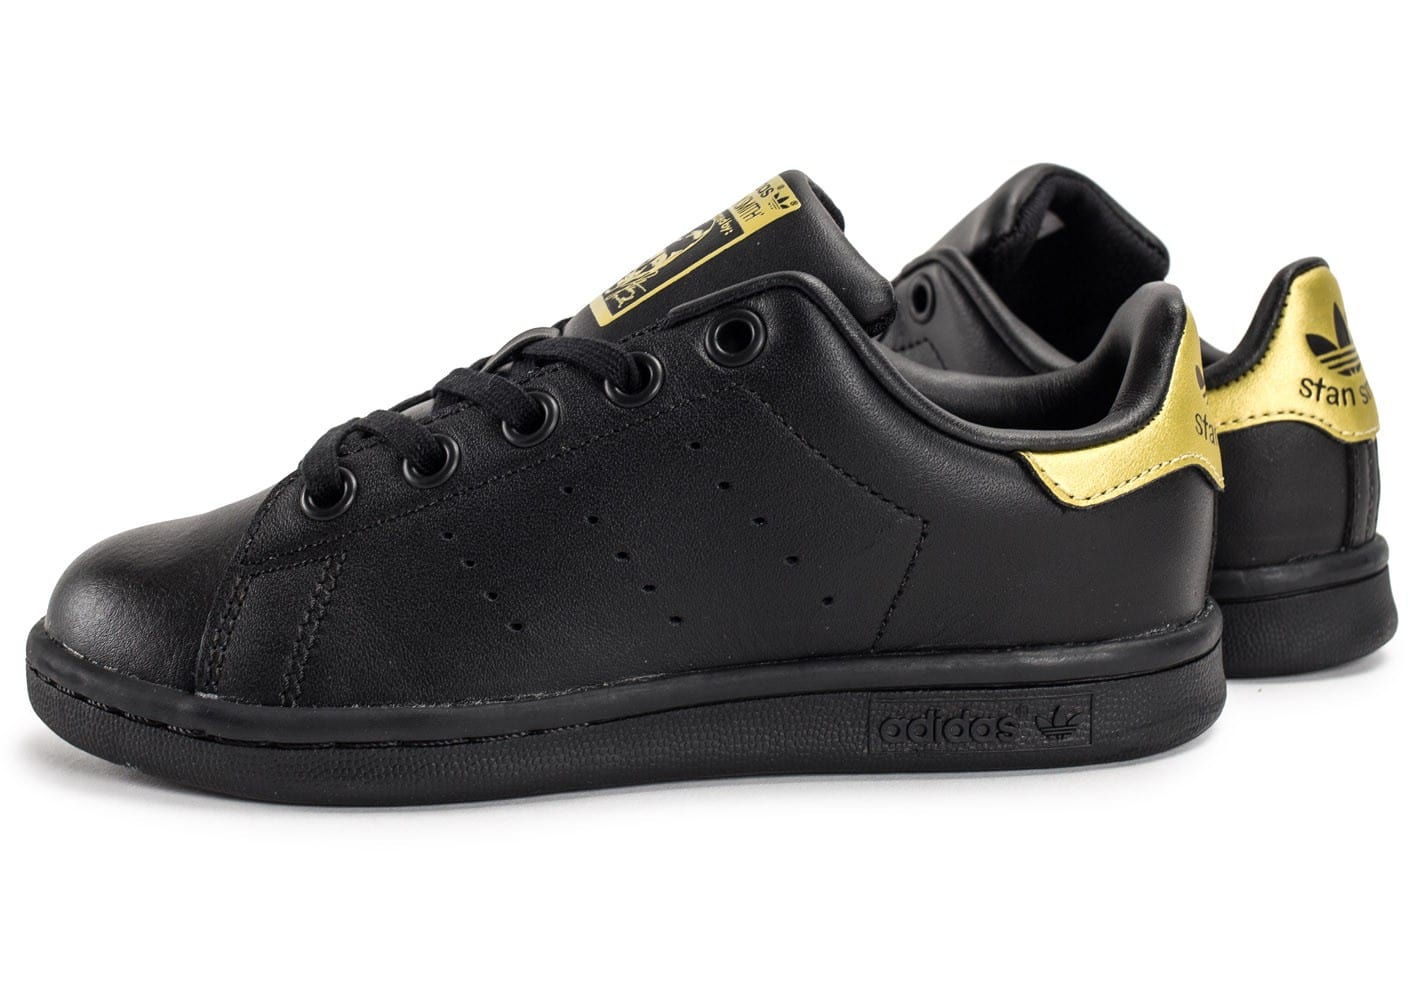 Chaussures Et Smith Chausport Or Noire Enfant Stan Adidas pYwgqxRH